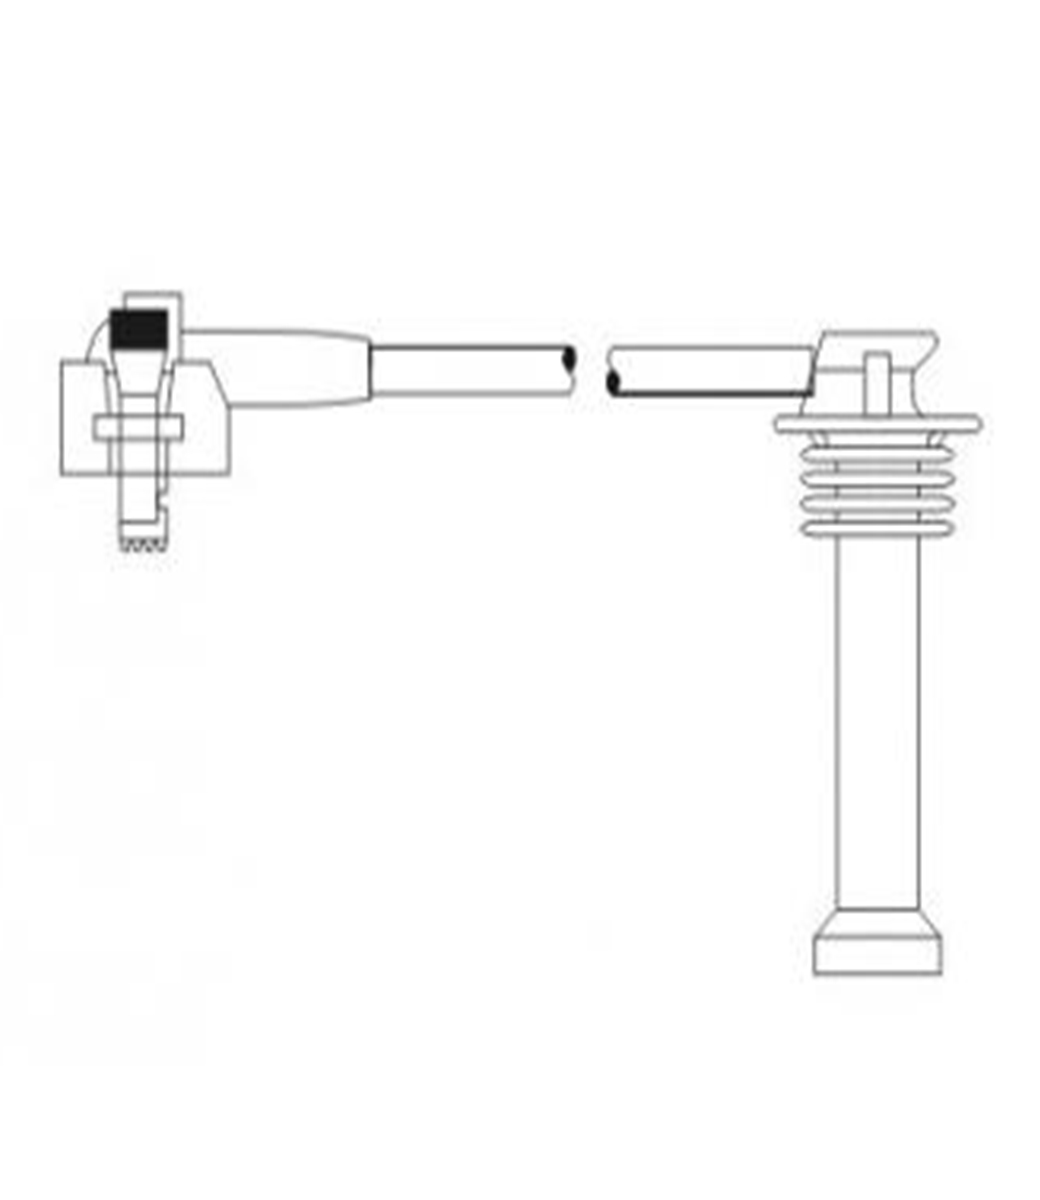 Ignition Cable Kit PS 6719